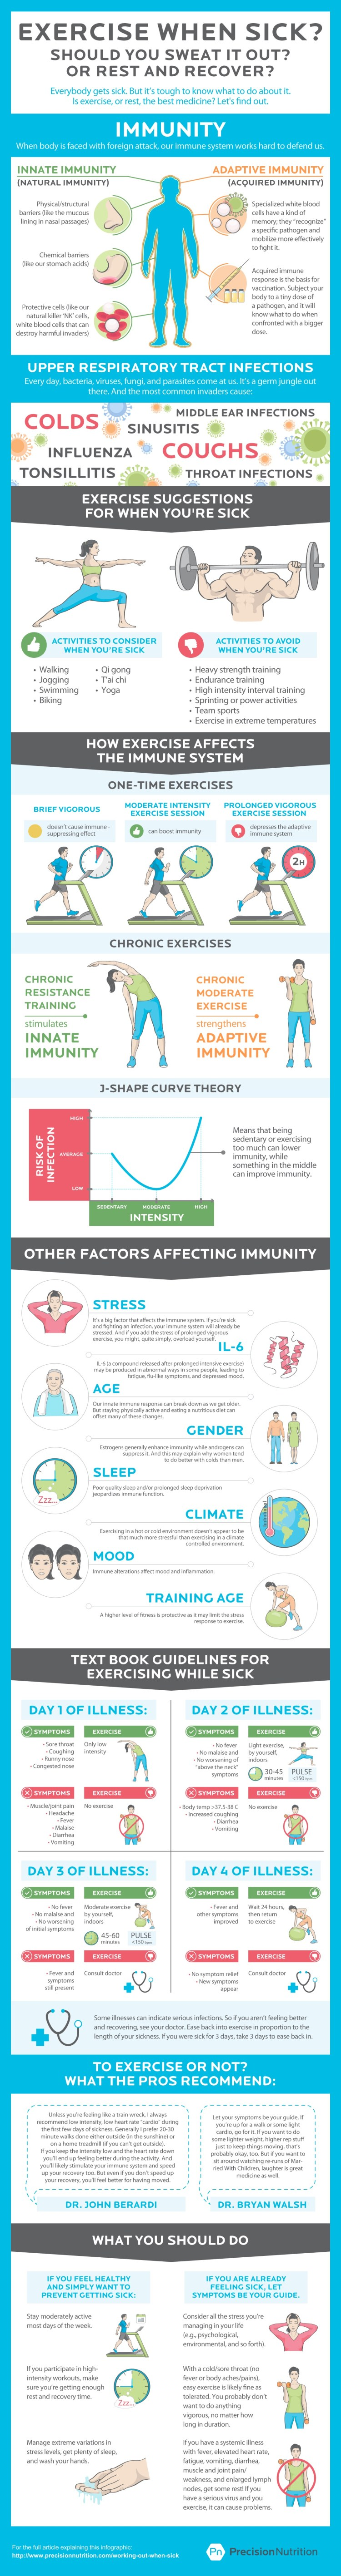 Precision Nutrition's chart explaining what exercises you should do when sick